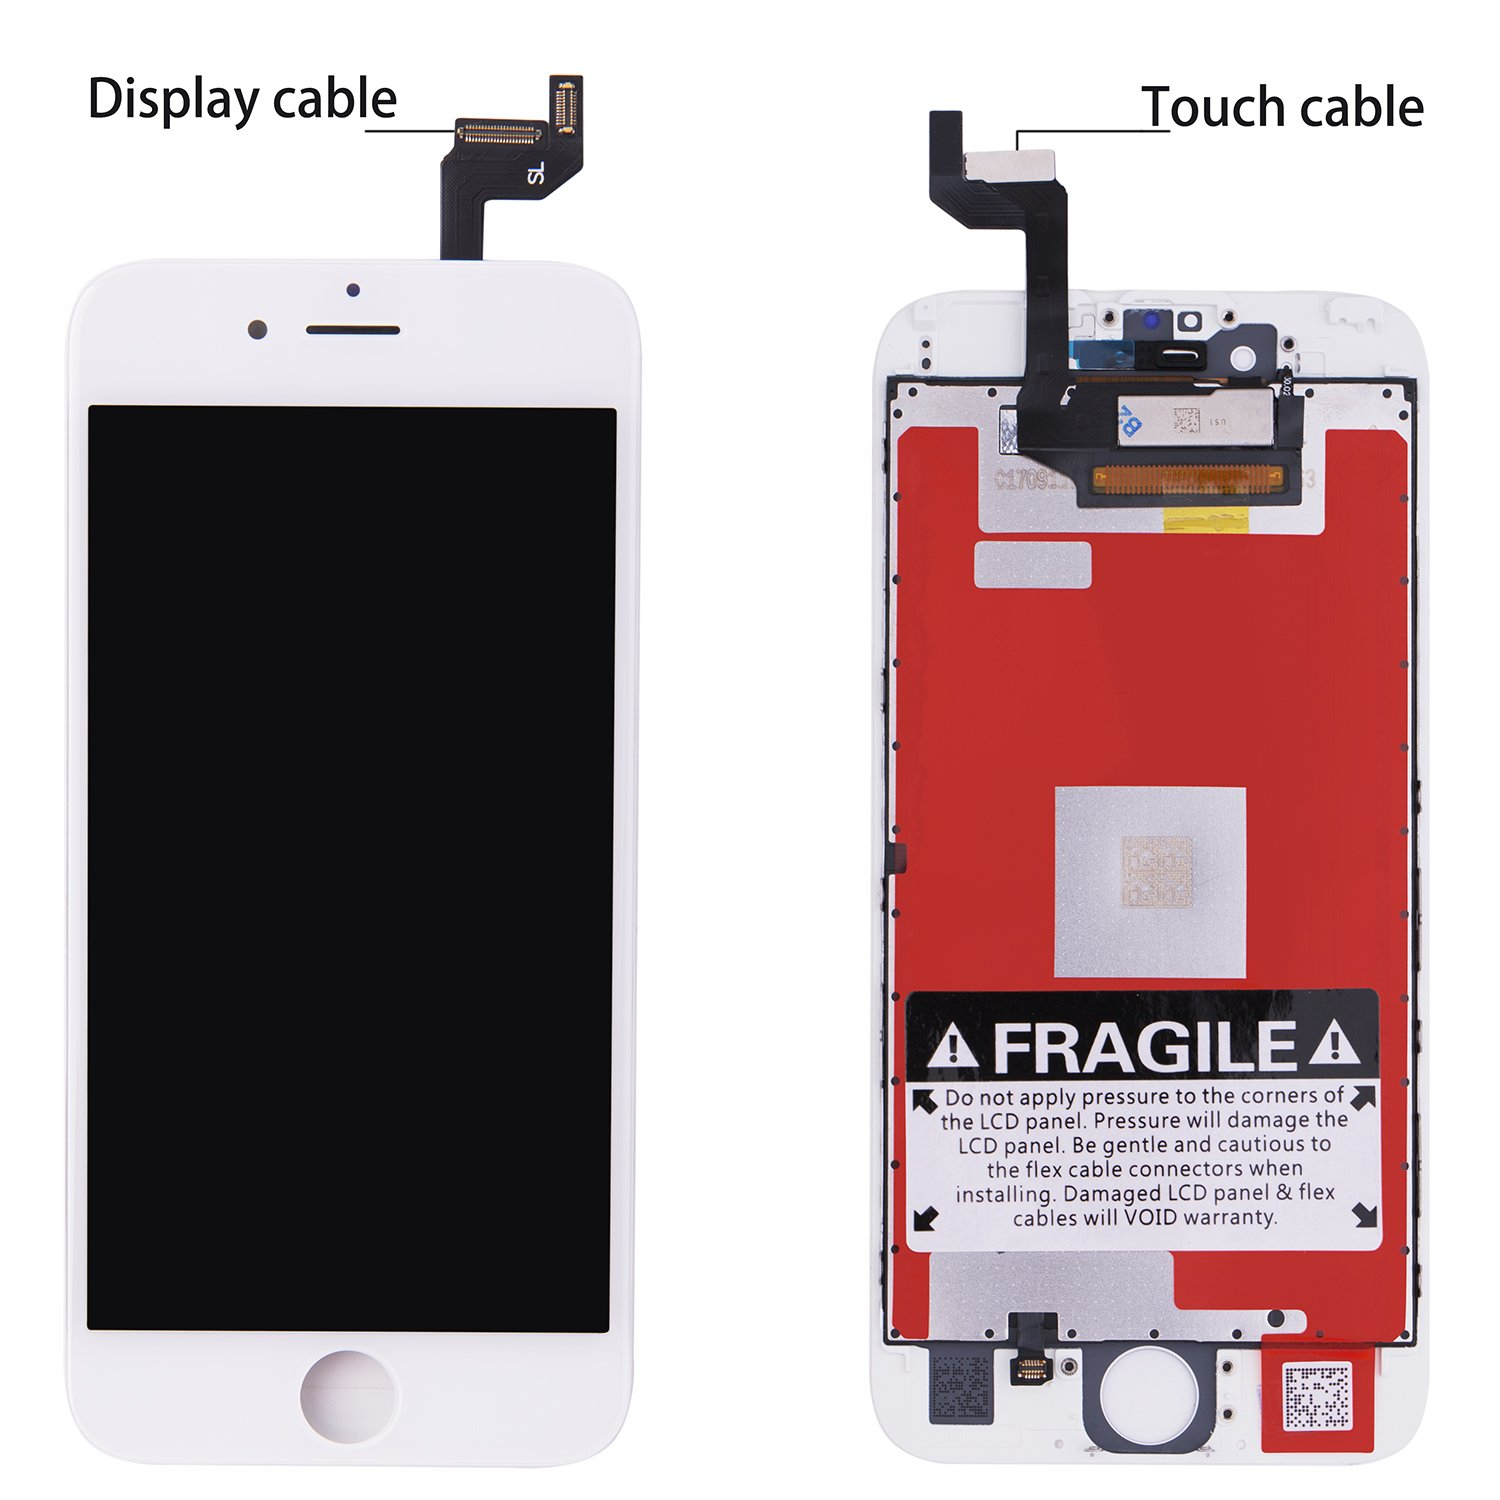 New iPhone 6S Screen Replacement LCD Dispaly for LCD Touch Screen Digitizer Assembly With 3D Touch Full Set Tools for iPhone 6S screen 4.7'' White